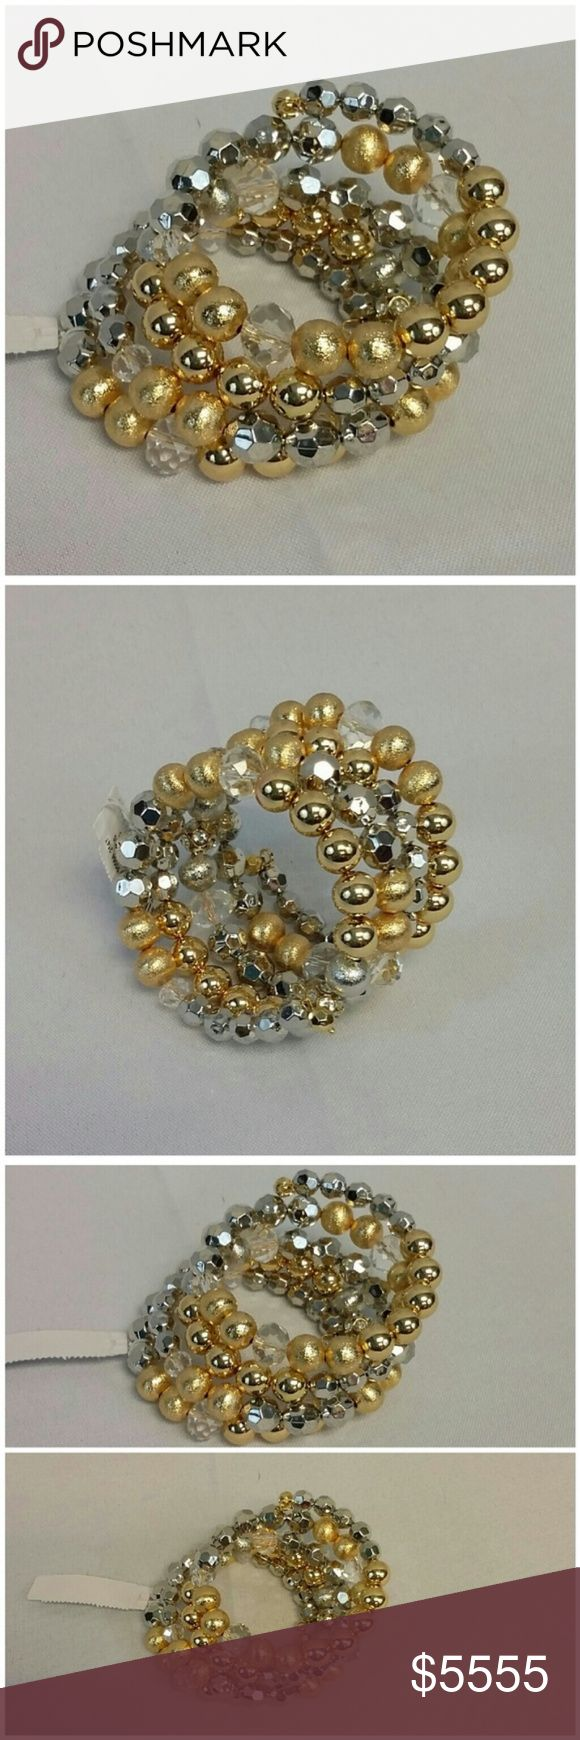 Offers of 40% Less on BUNDLES Always Accepted! Gold/Silver-tone Varying Size Round Balls Bracelet, gold-tone, silver-tone, crystal, clear, and prizm balls in varying sizes and finish, wraps around wrist multiple times, stretchy, one size fits most, New With Tag, in bubble wrap and plastic. ADD to a BUNDLE! Offers of 40% Less on BUNDLES Always Accepted! New York & Company Jewelry Bracelets